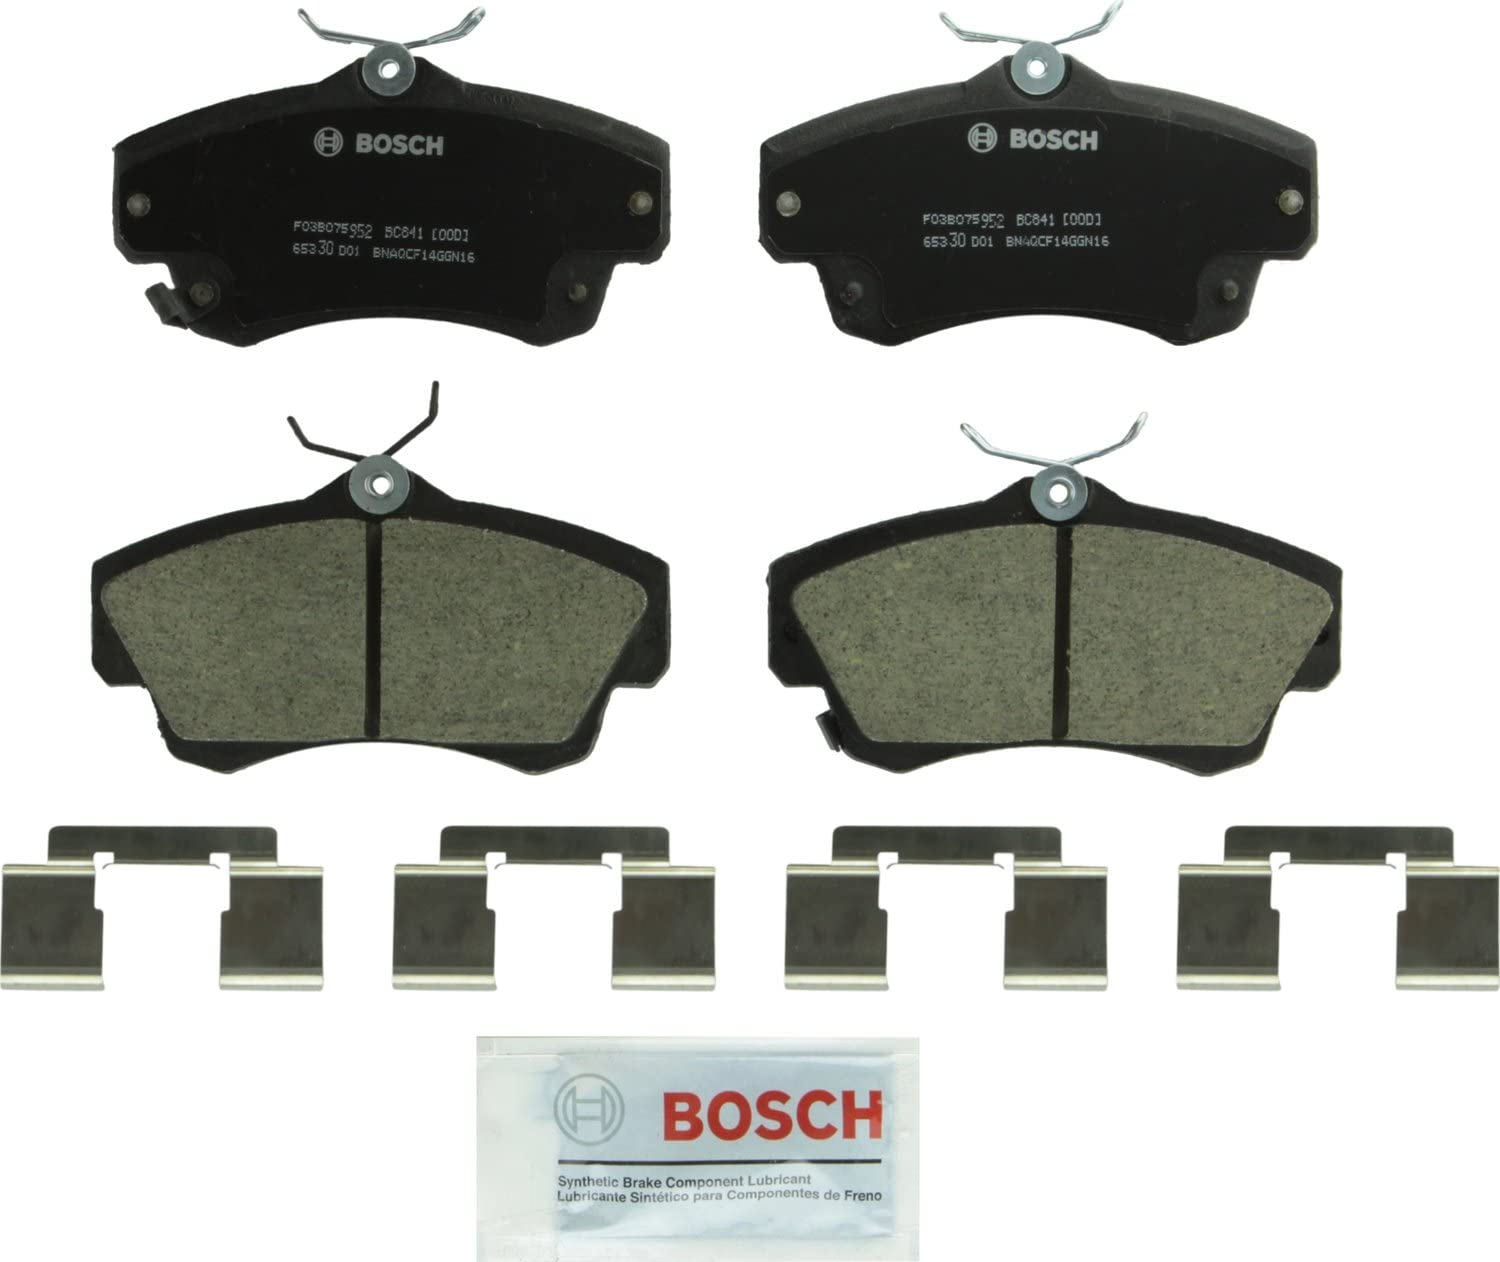 FRONT Bosch BE841H Blue Disc Brake Pad Set with Hardware for Select 2001-10 Chrysler PT Cruiser and 2003-05 Dodge Neon Vehicles